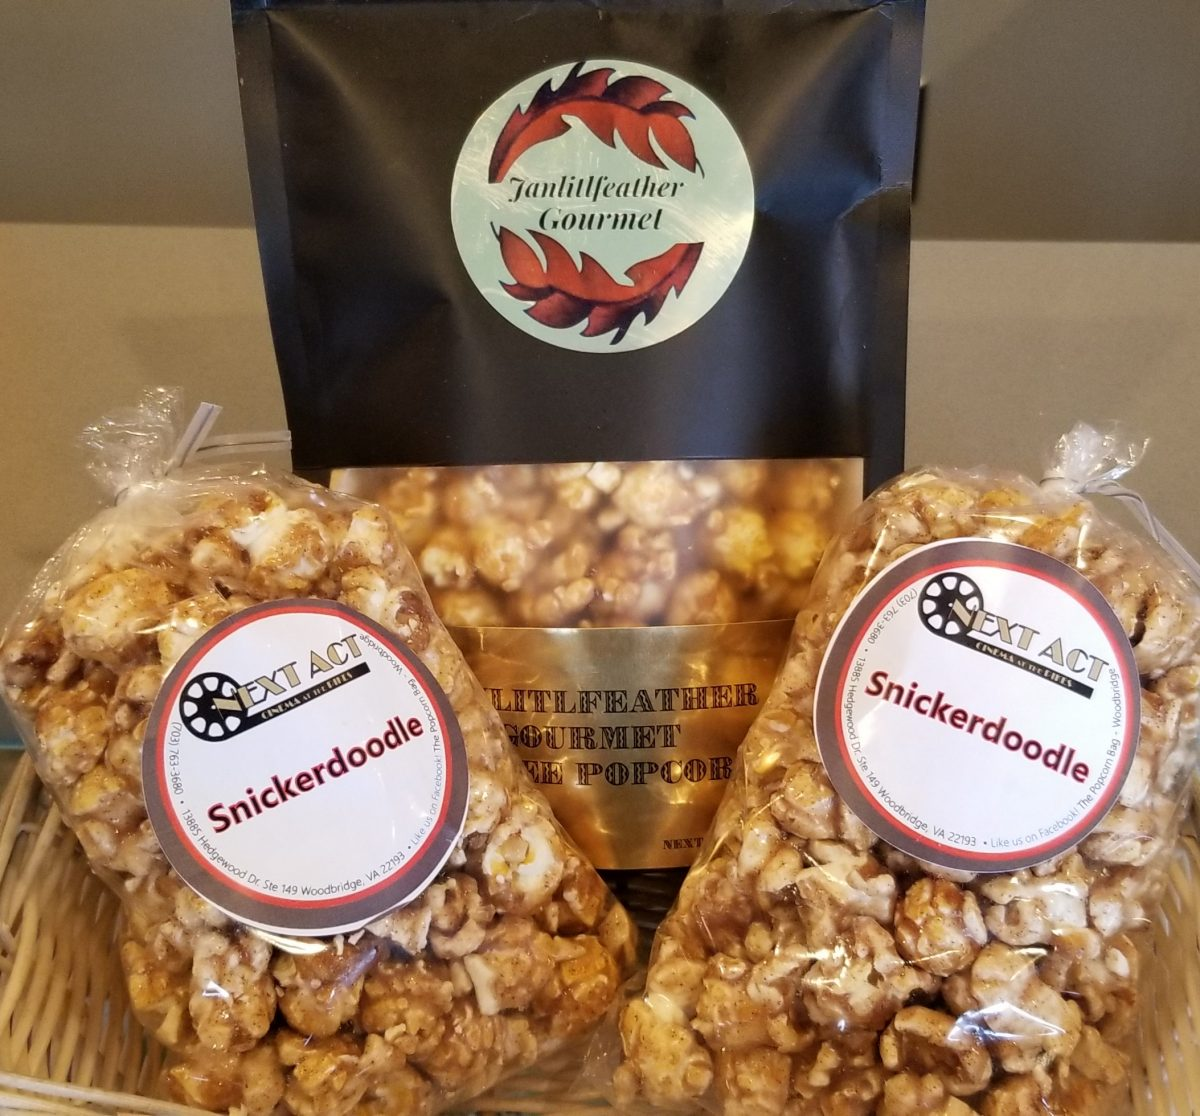 Snickerdoodle popcorn by Janlitlfeather Gourmet